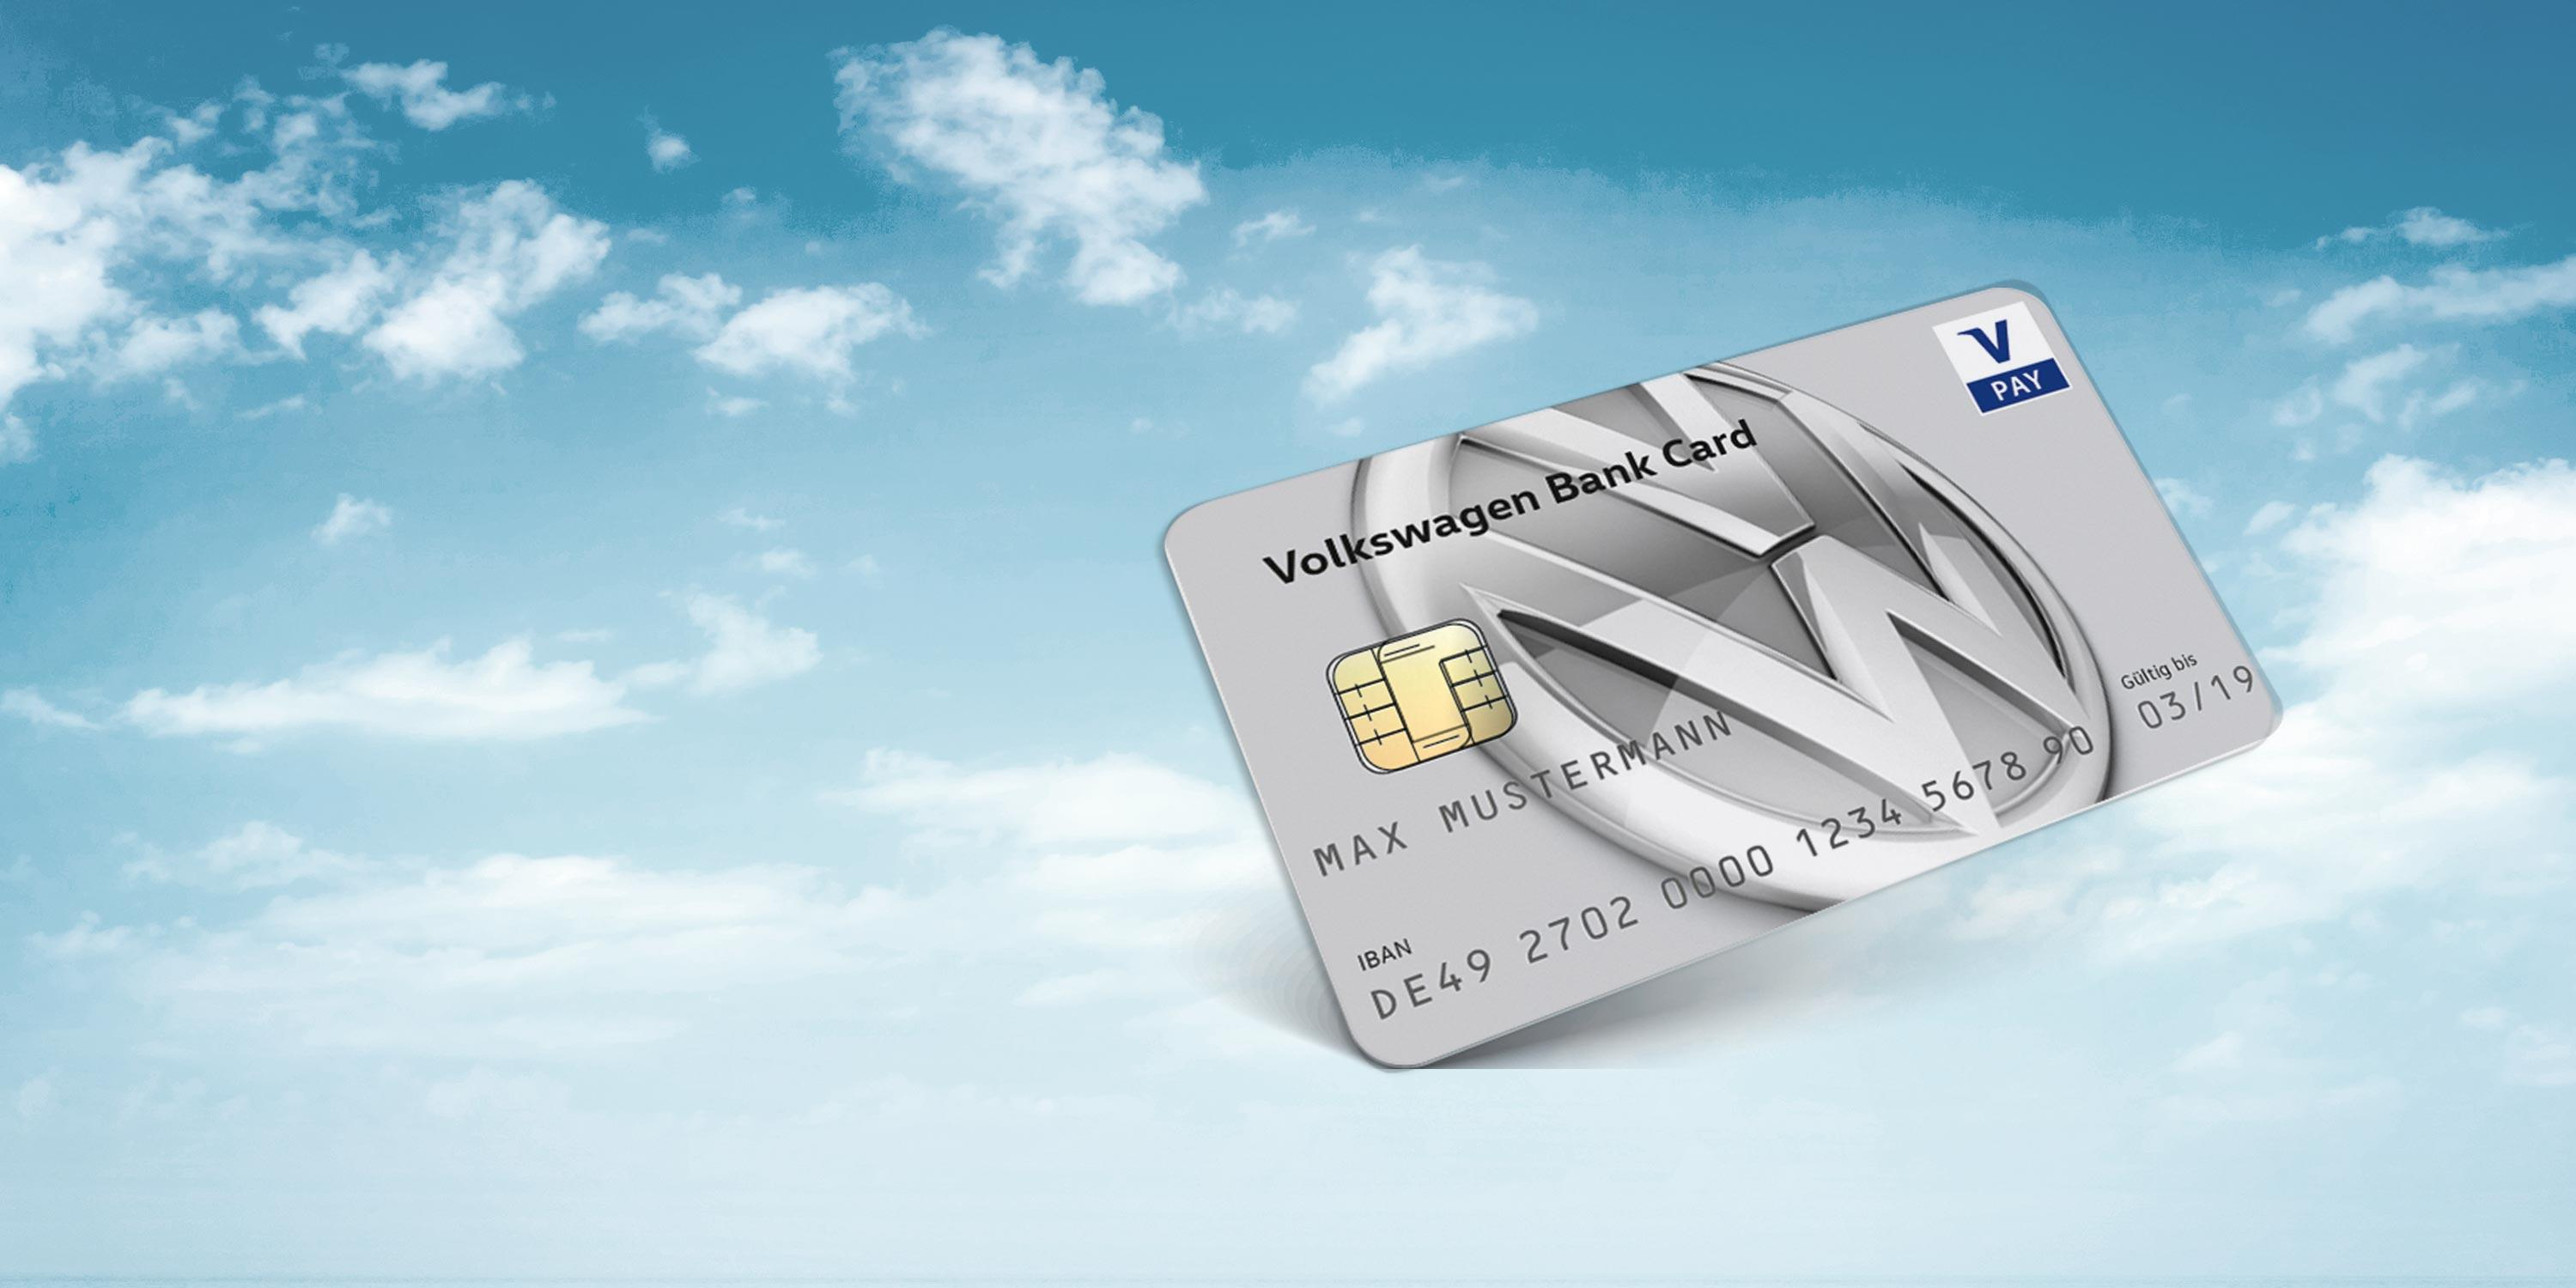 volkswagen bank card in sky